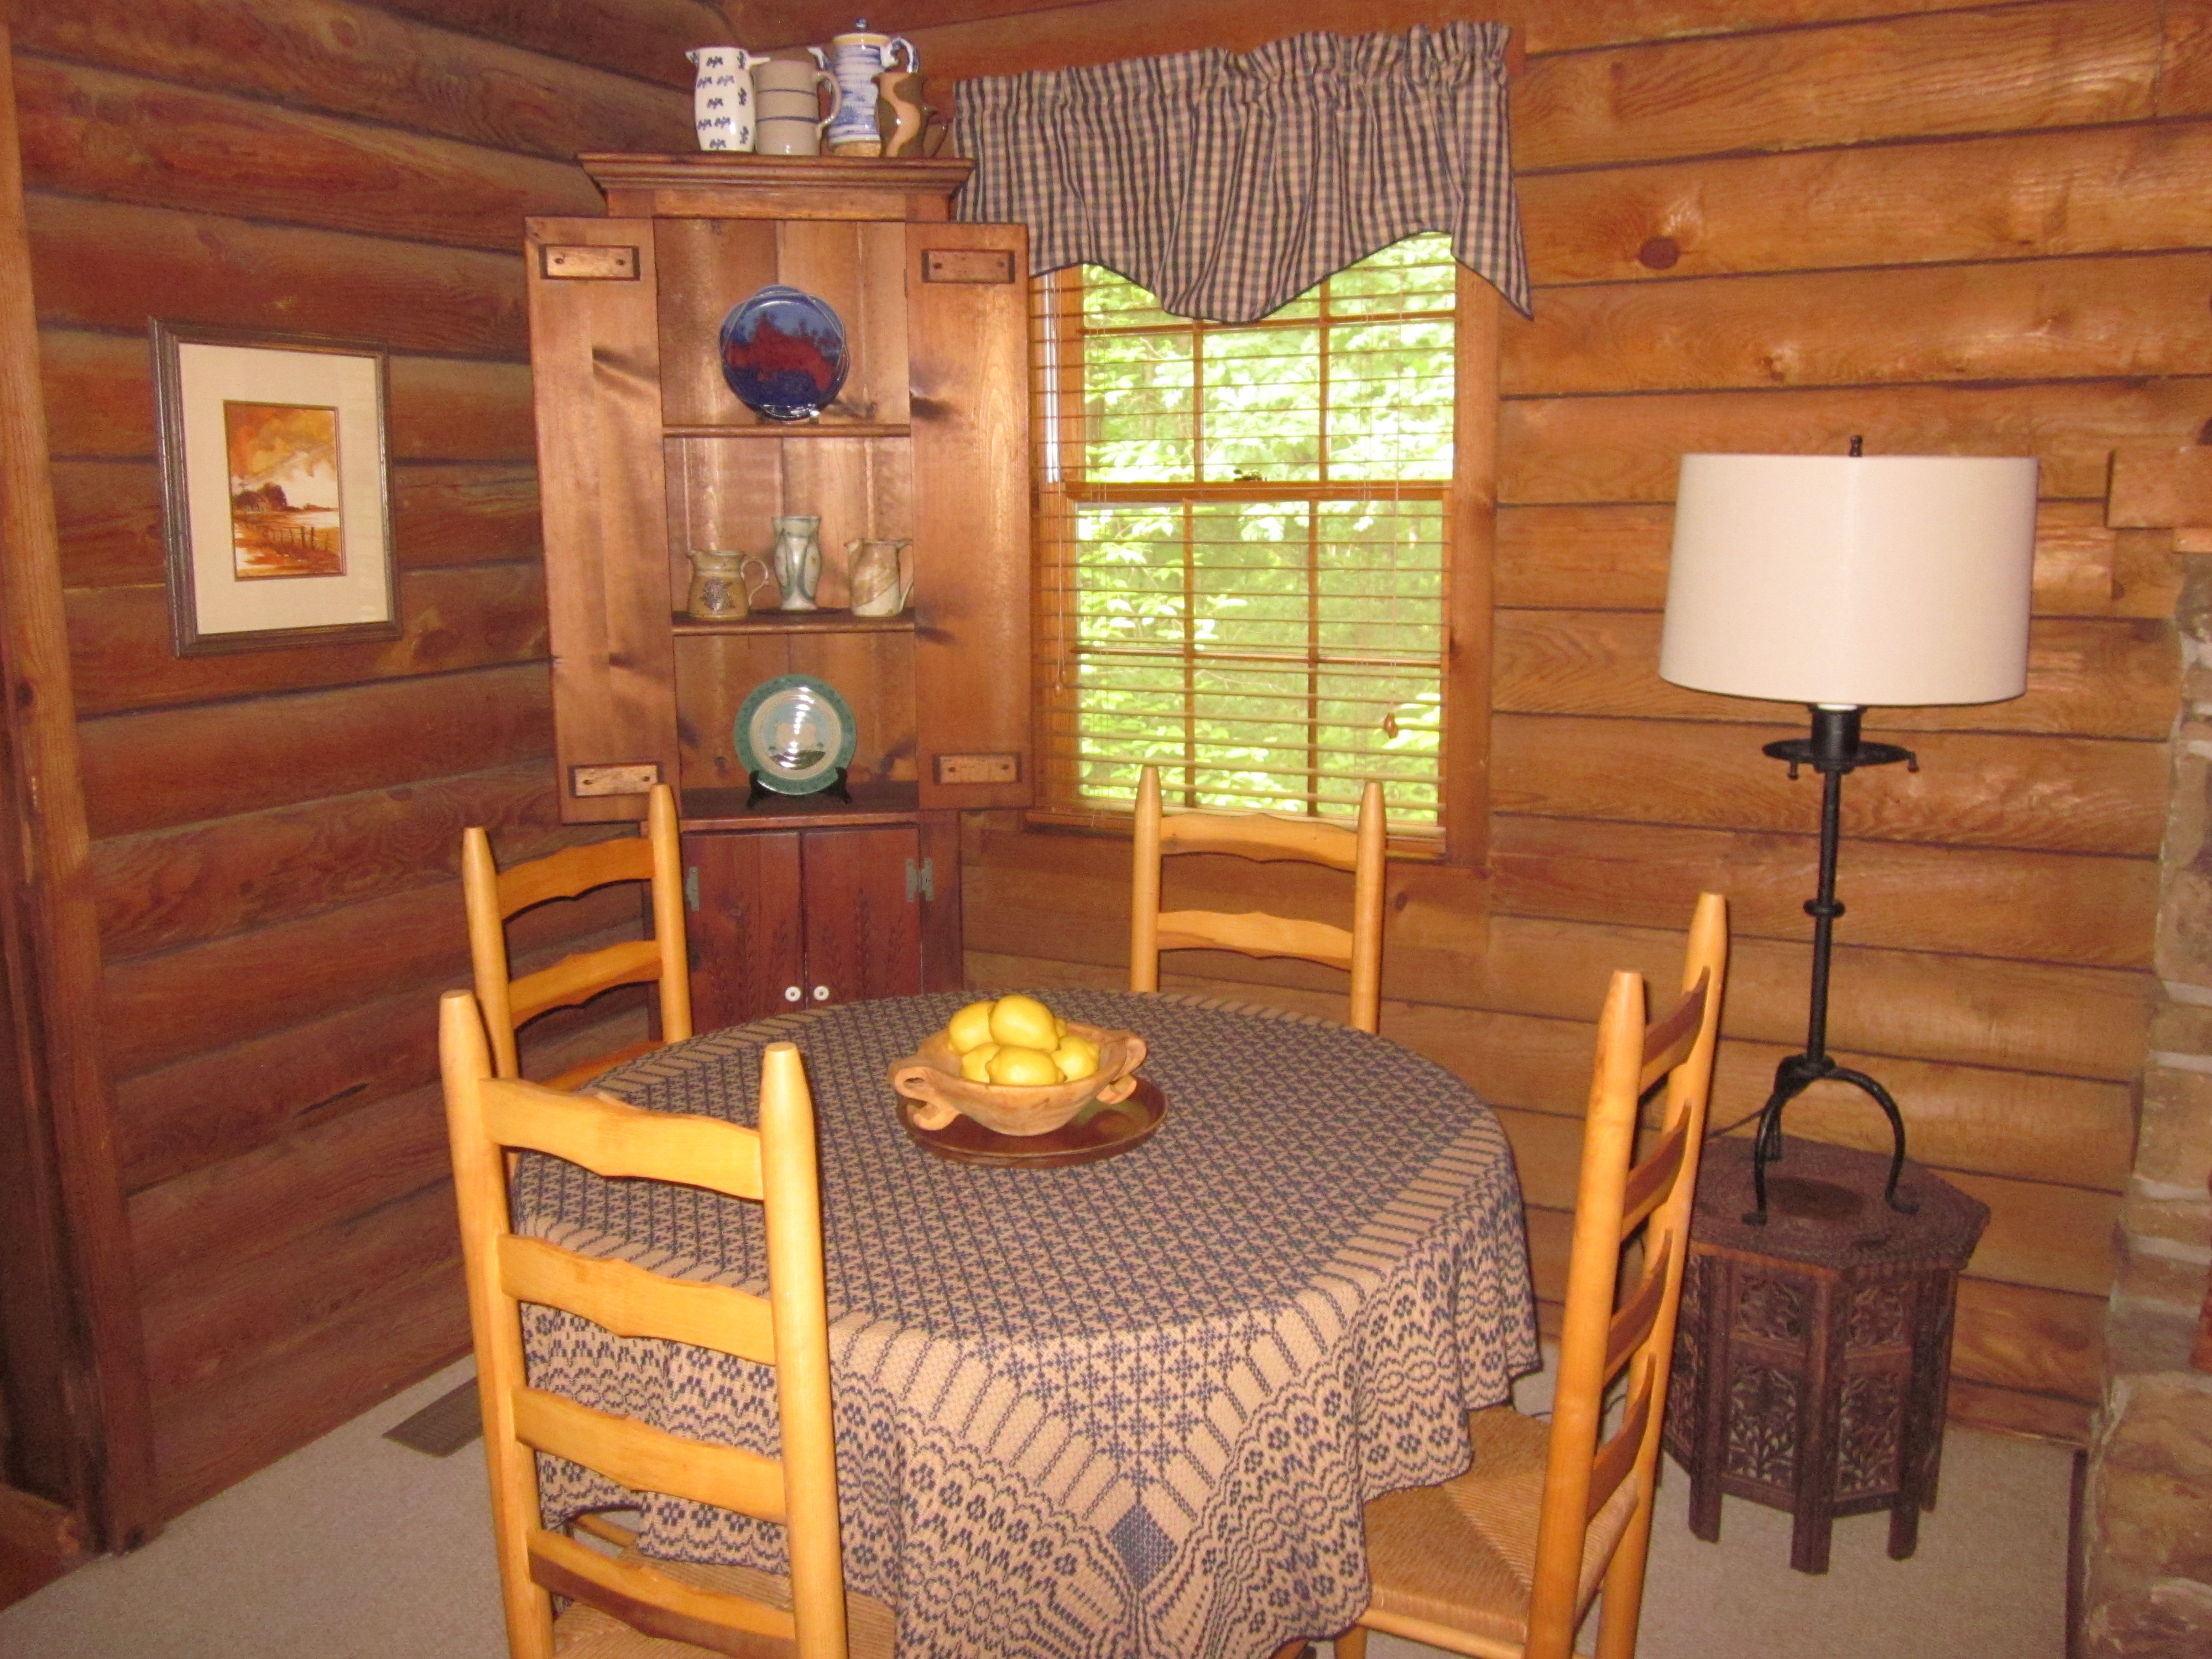 accommodations dahlonega eco barefoot hotels hills cabin hotel ga in cabins ecocabin